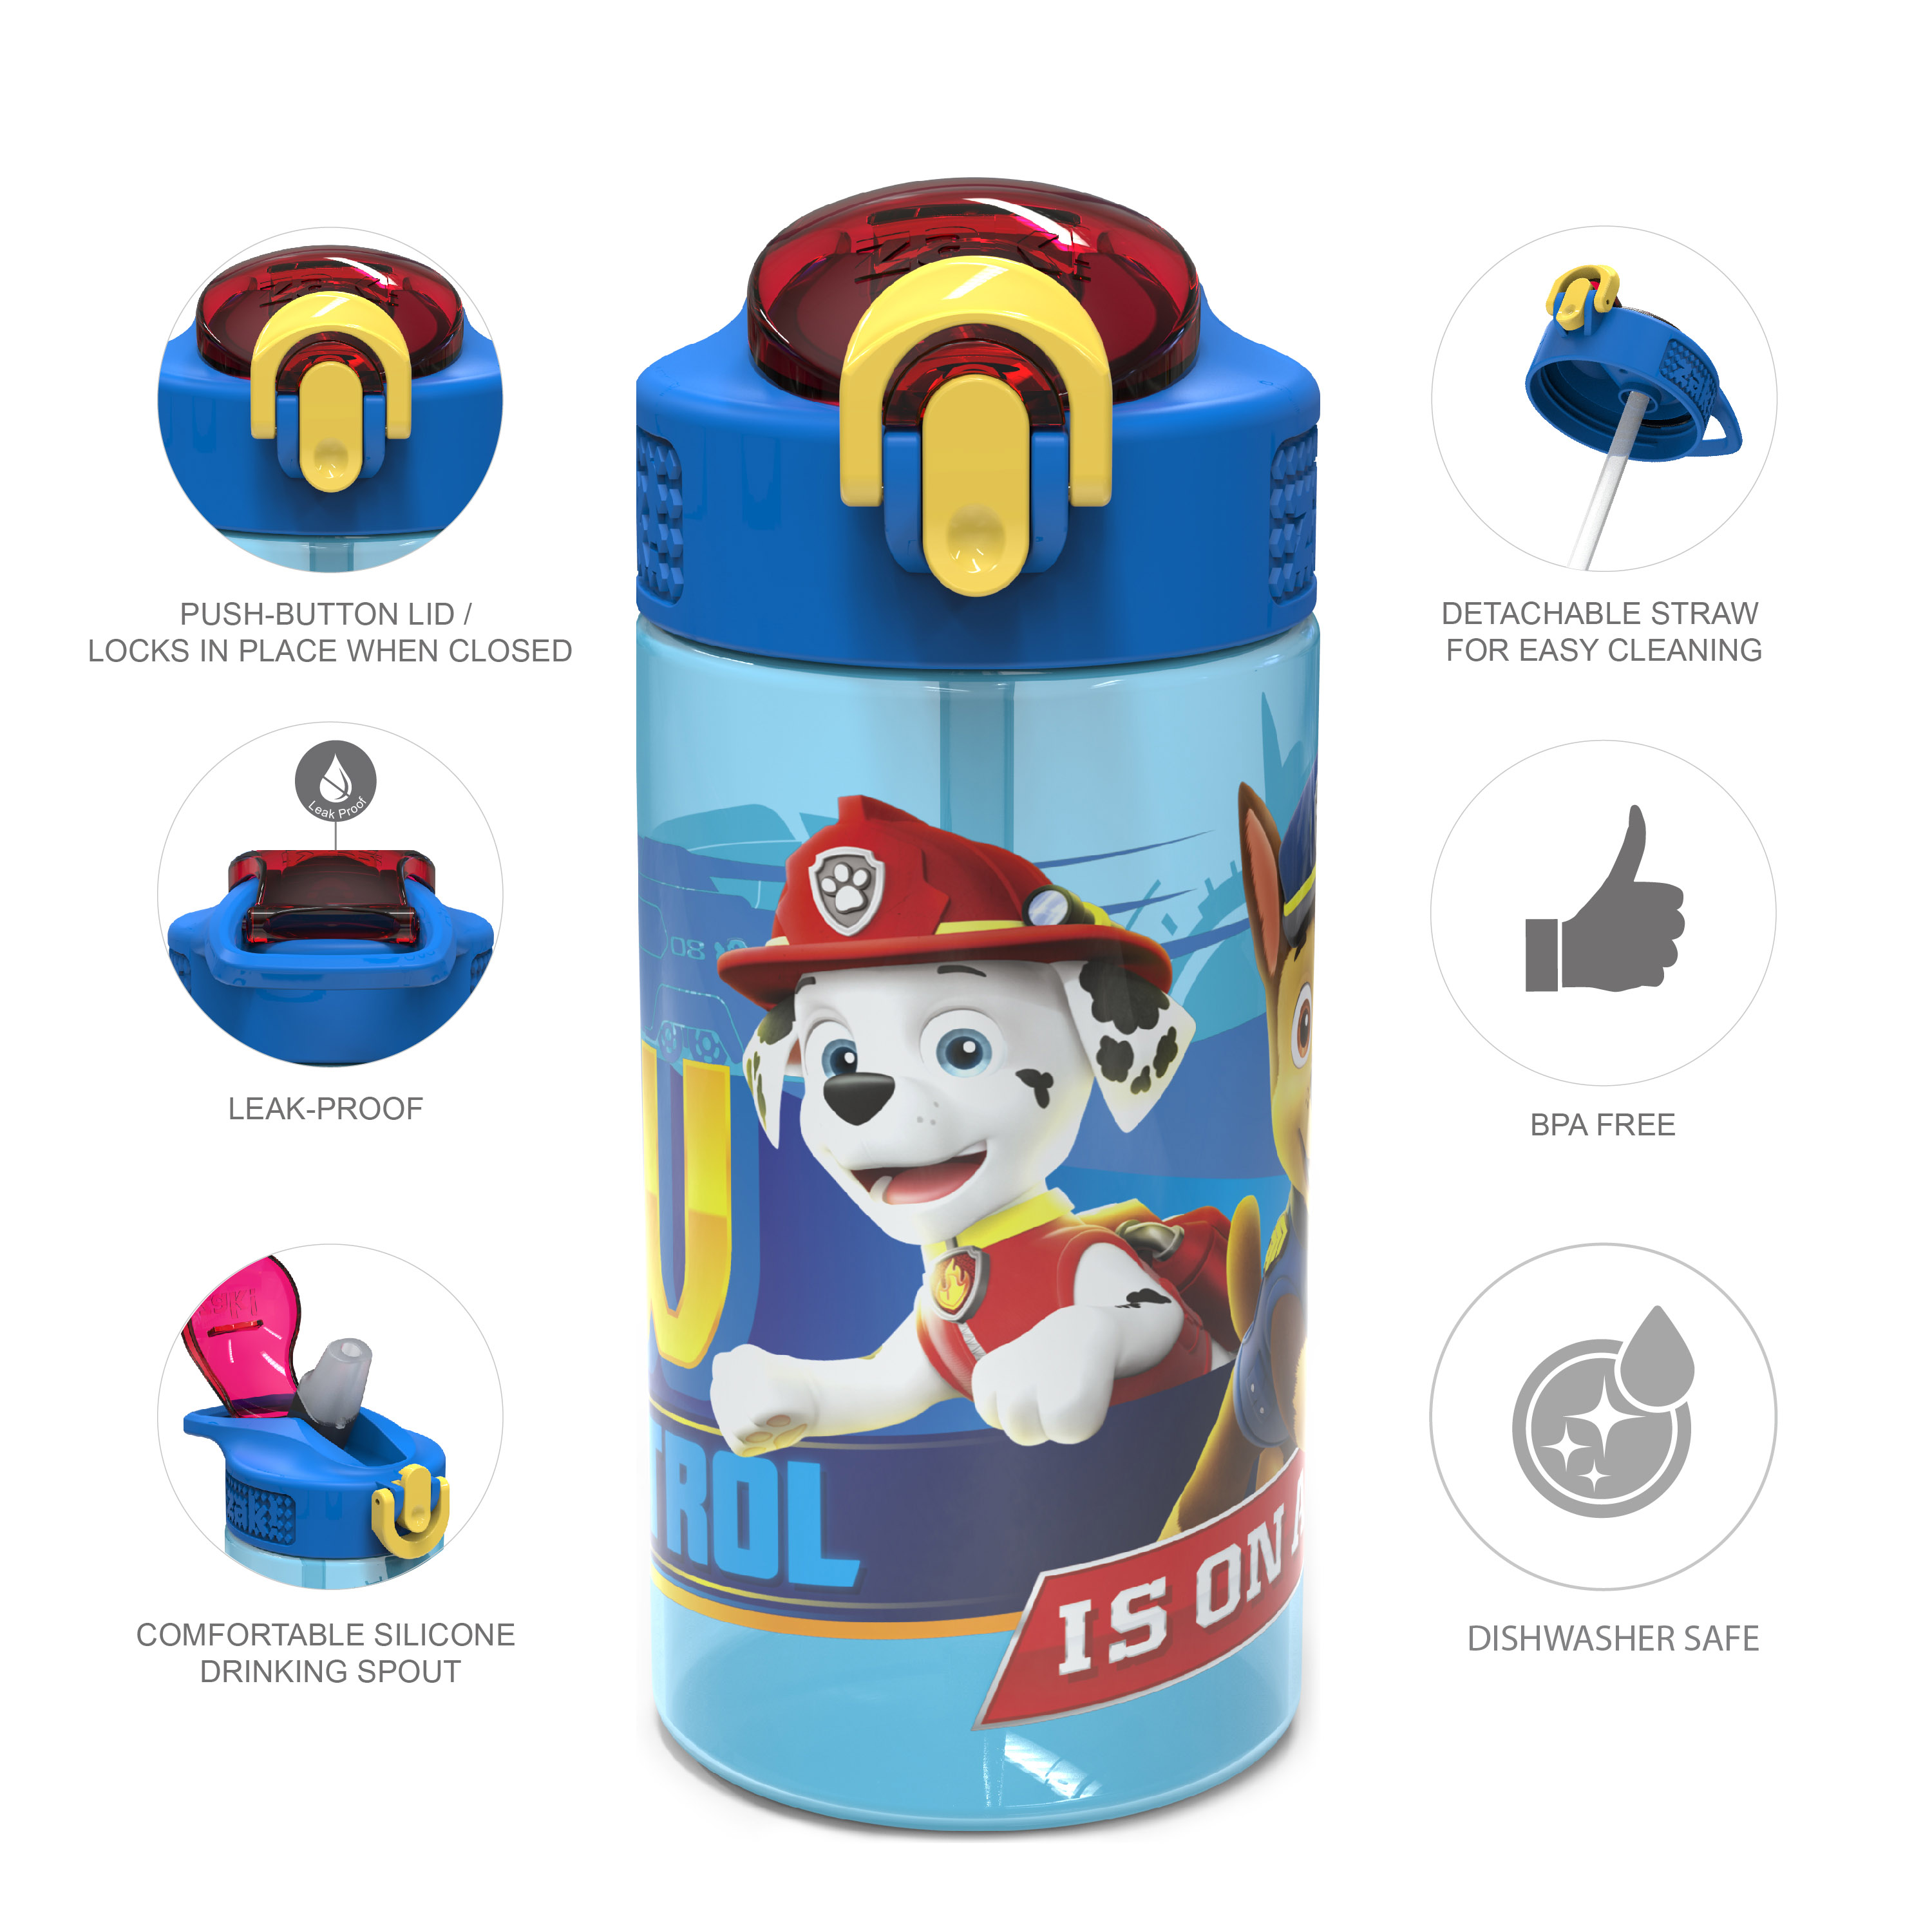 Paw Patrol 16 ounce Reusable Plastic Water Bottle with Straw, Marshall, 2-piece set slideshow image 9